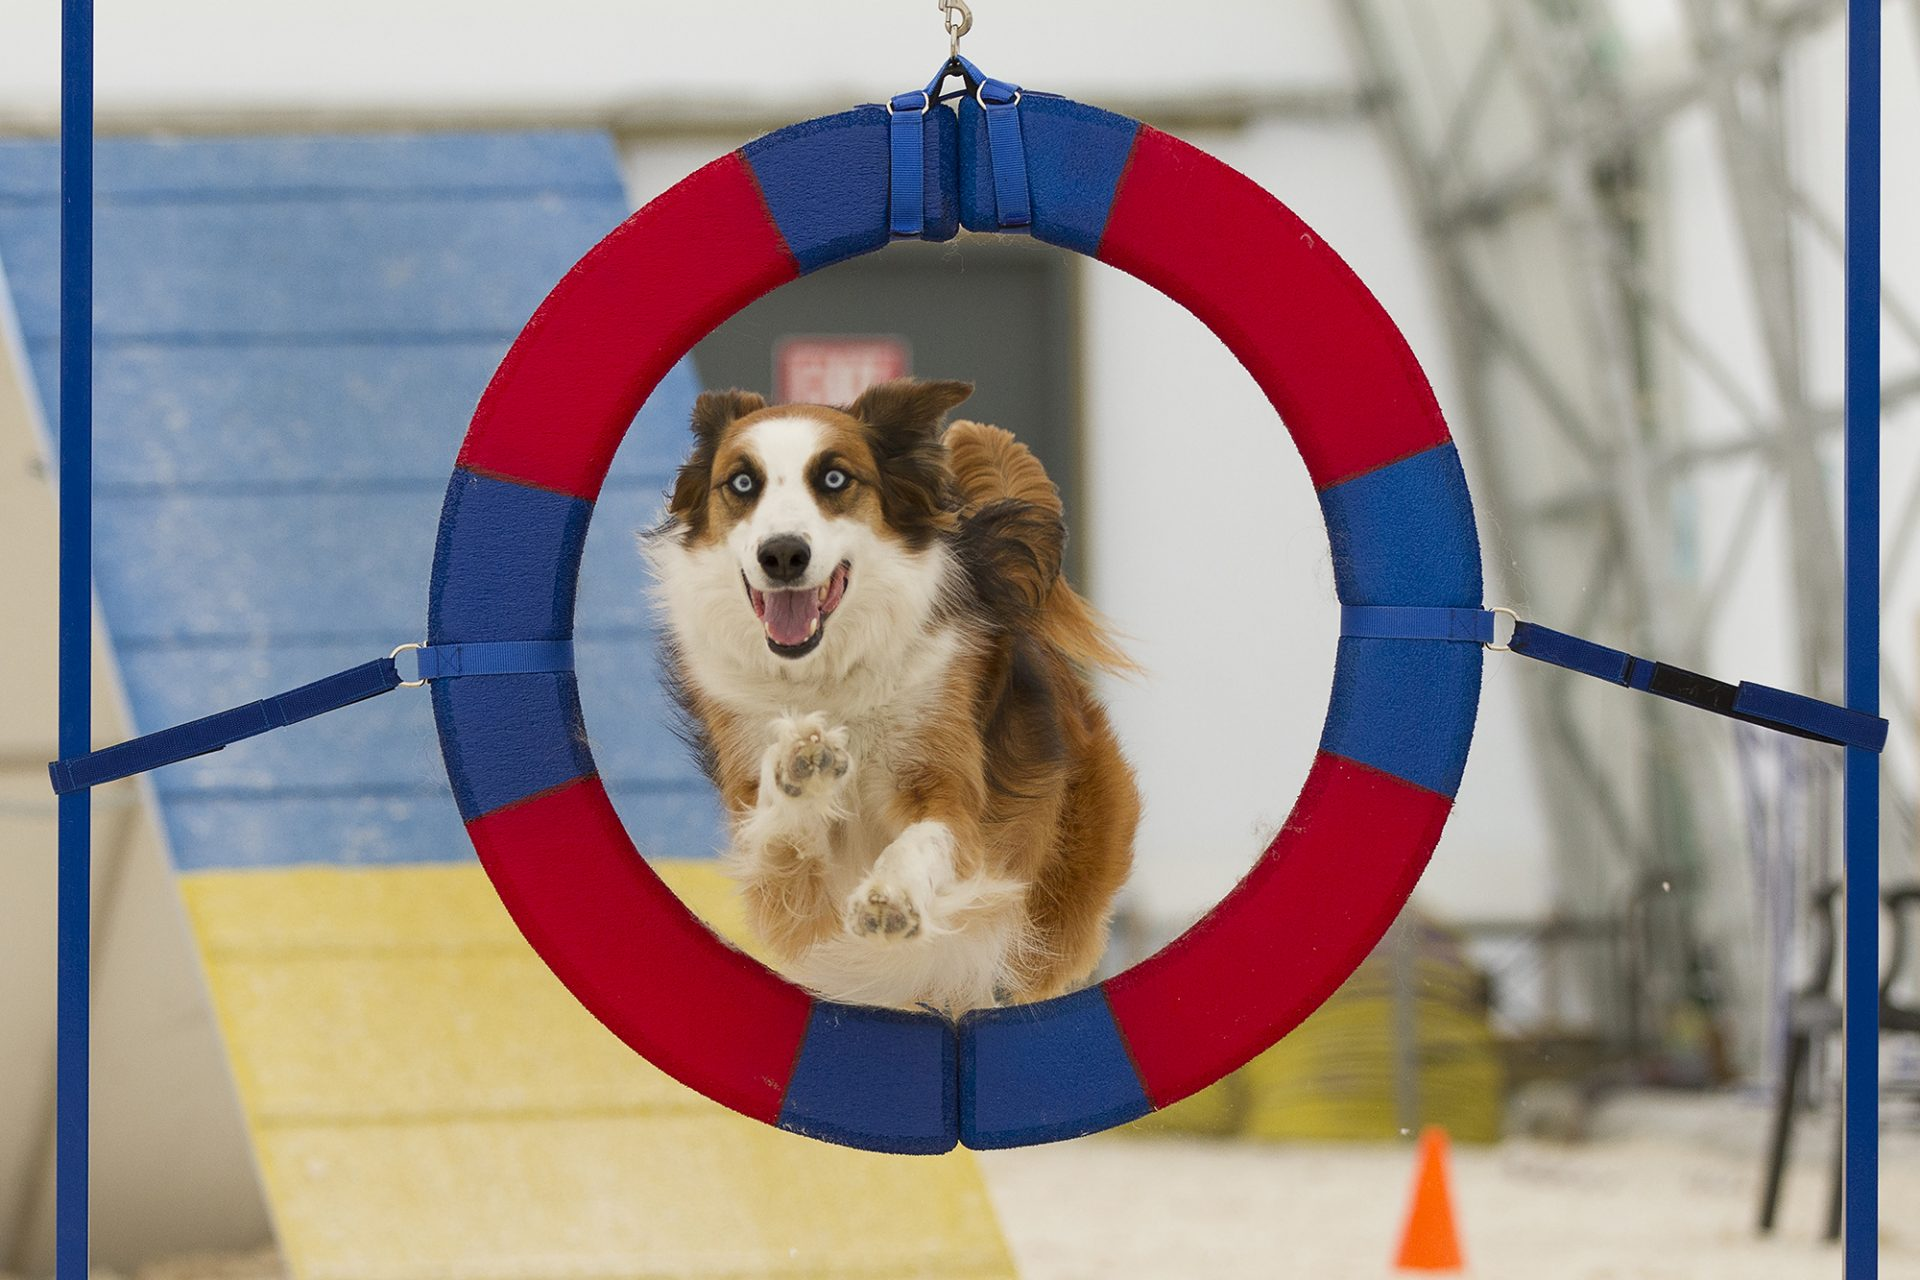 English Shepherd Dog through tire jump in dog agility